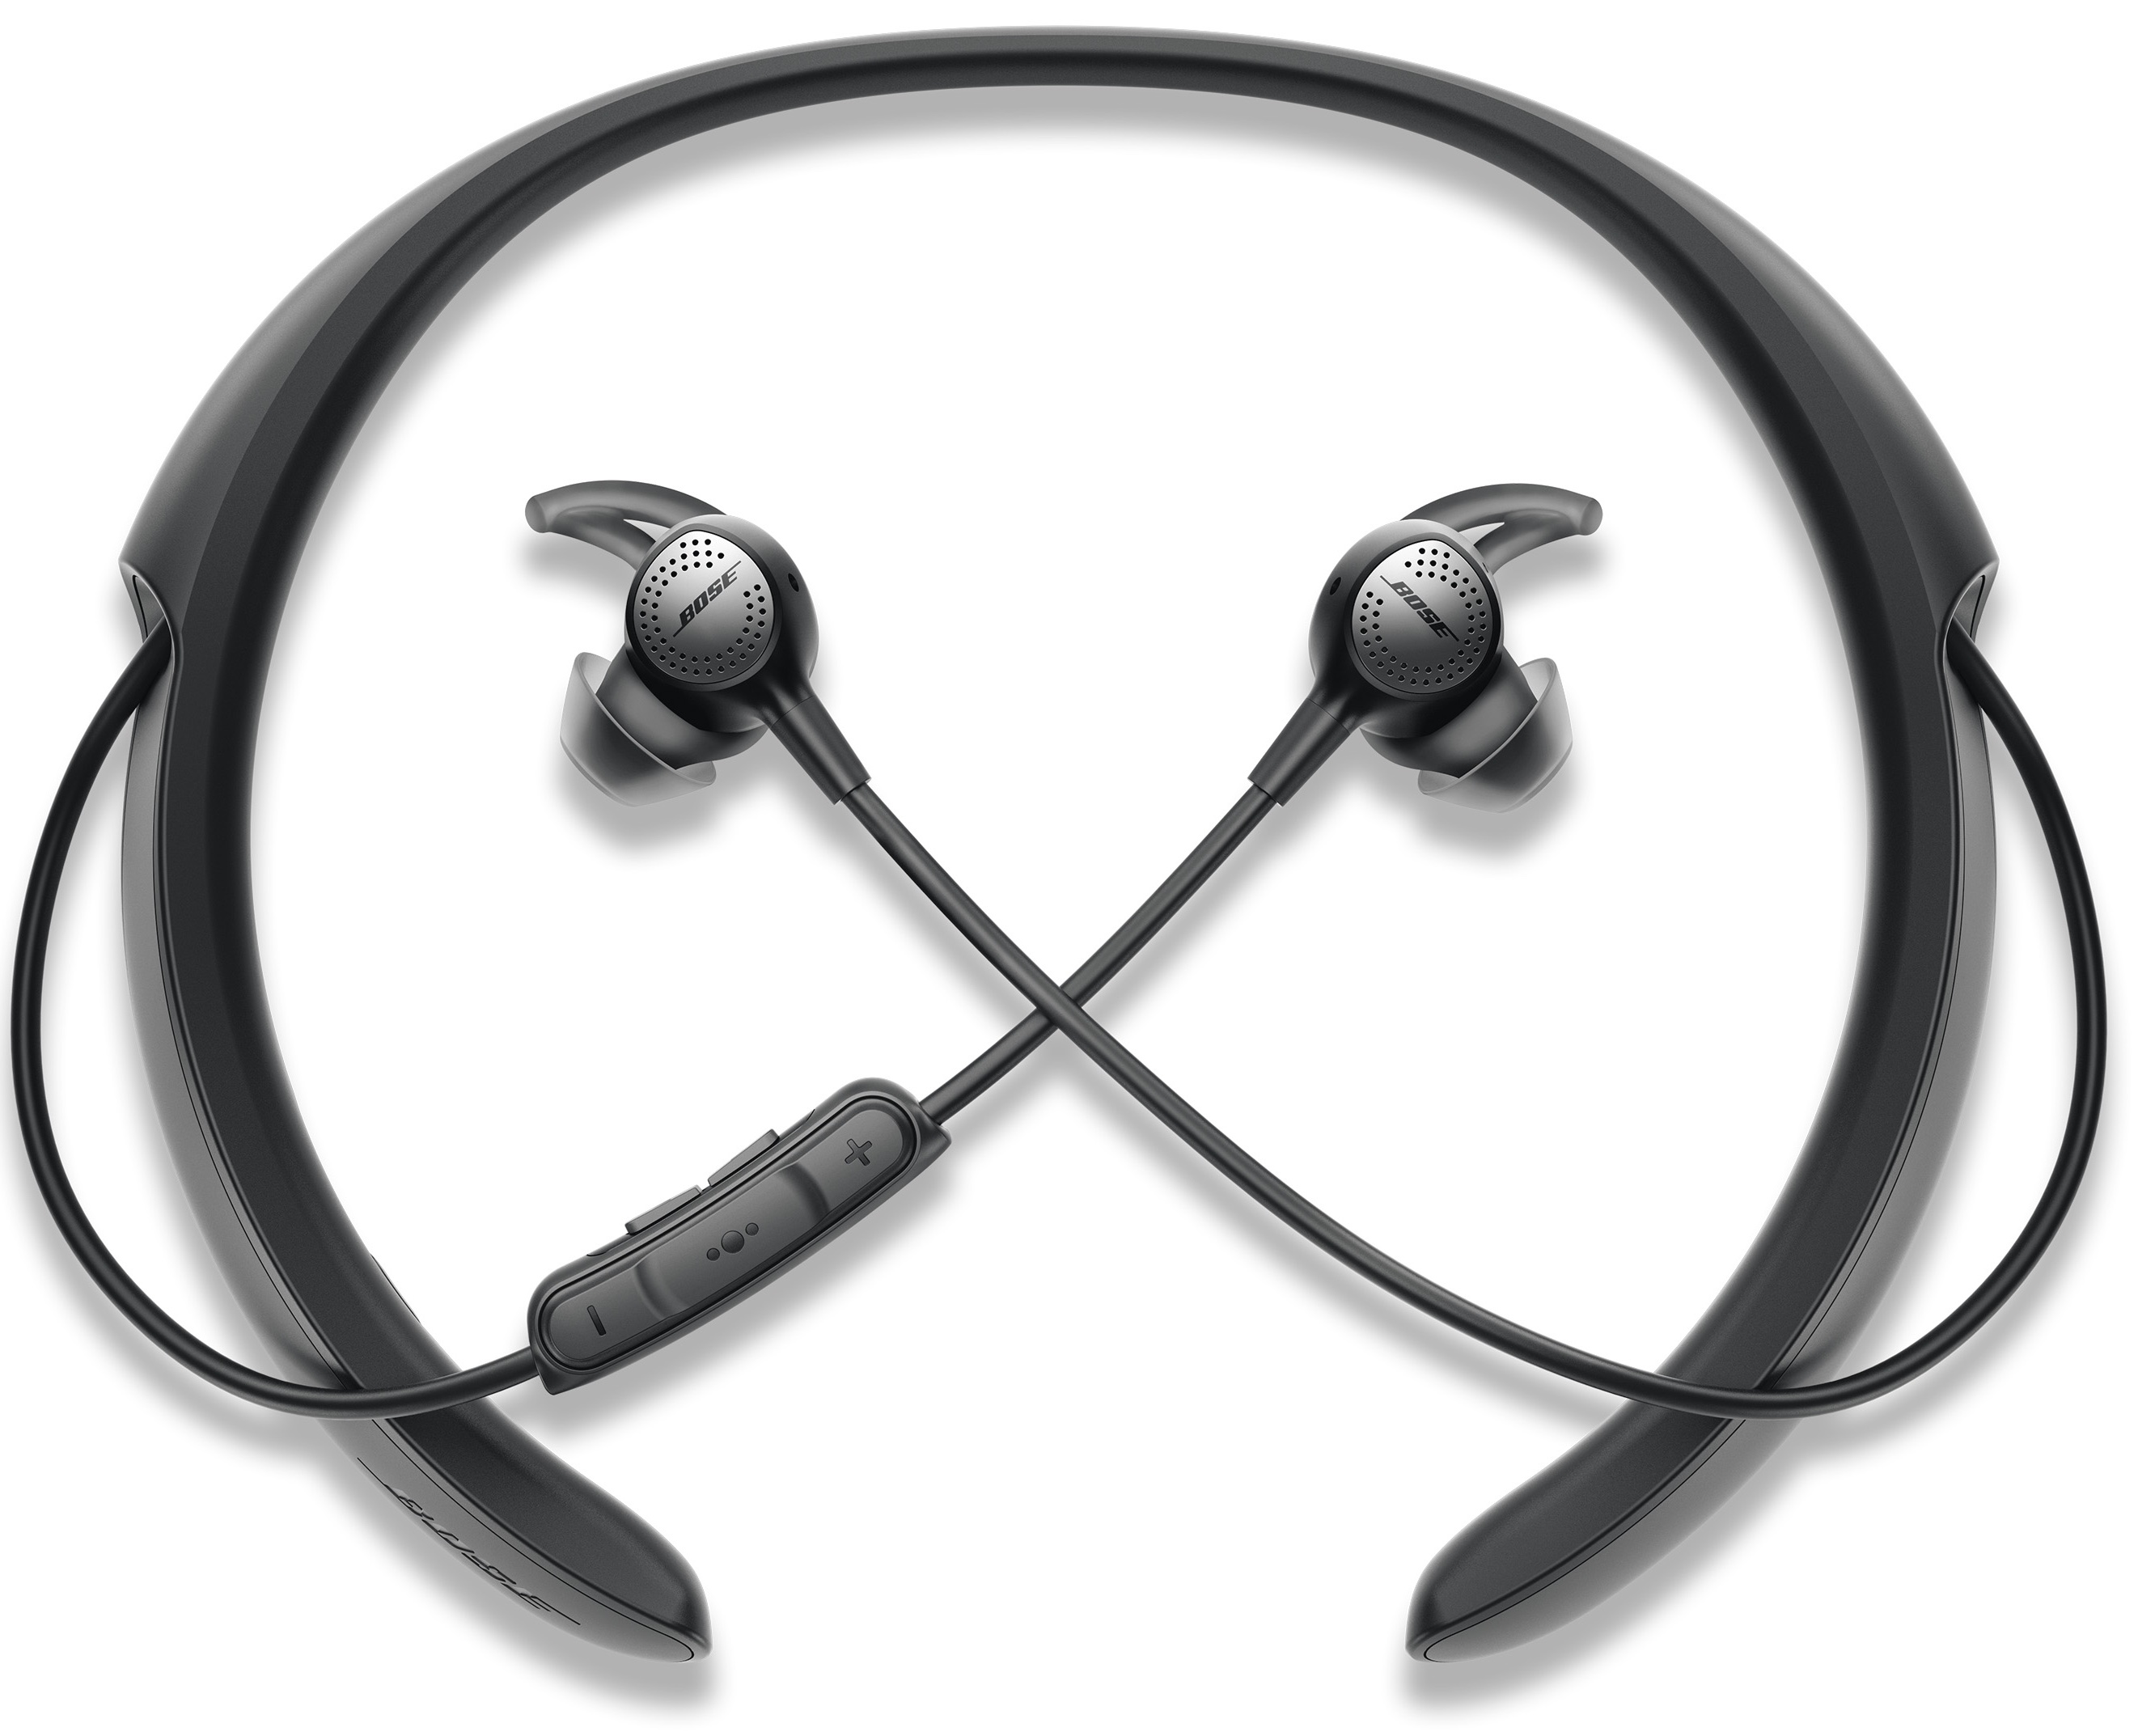 Bose earphones wireless noise cancelling - bose earphones noise cancelling